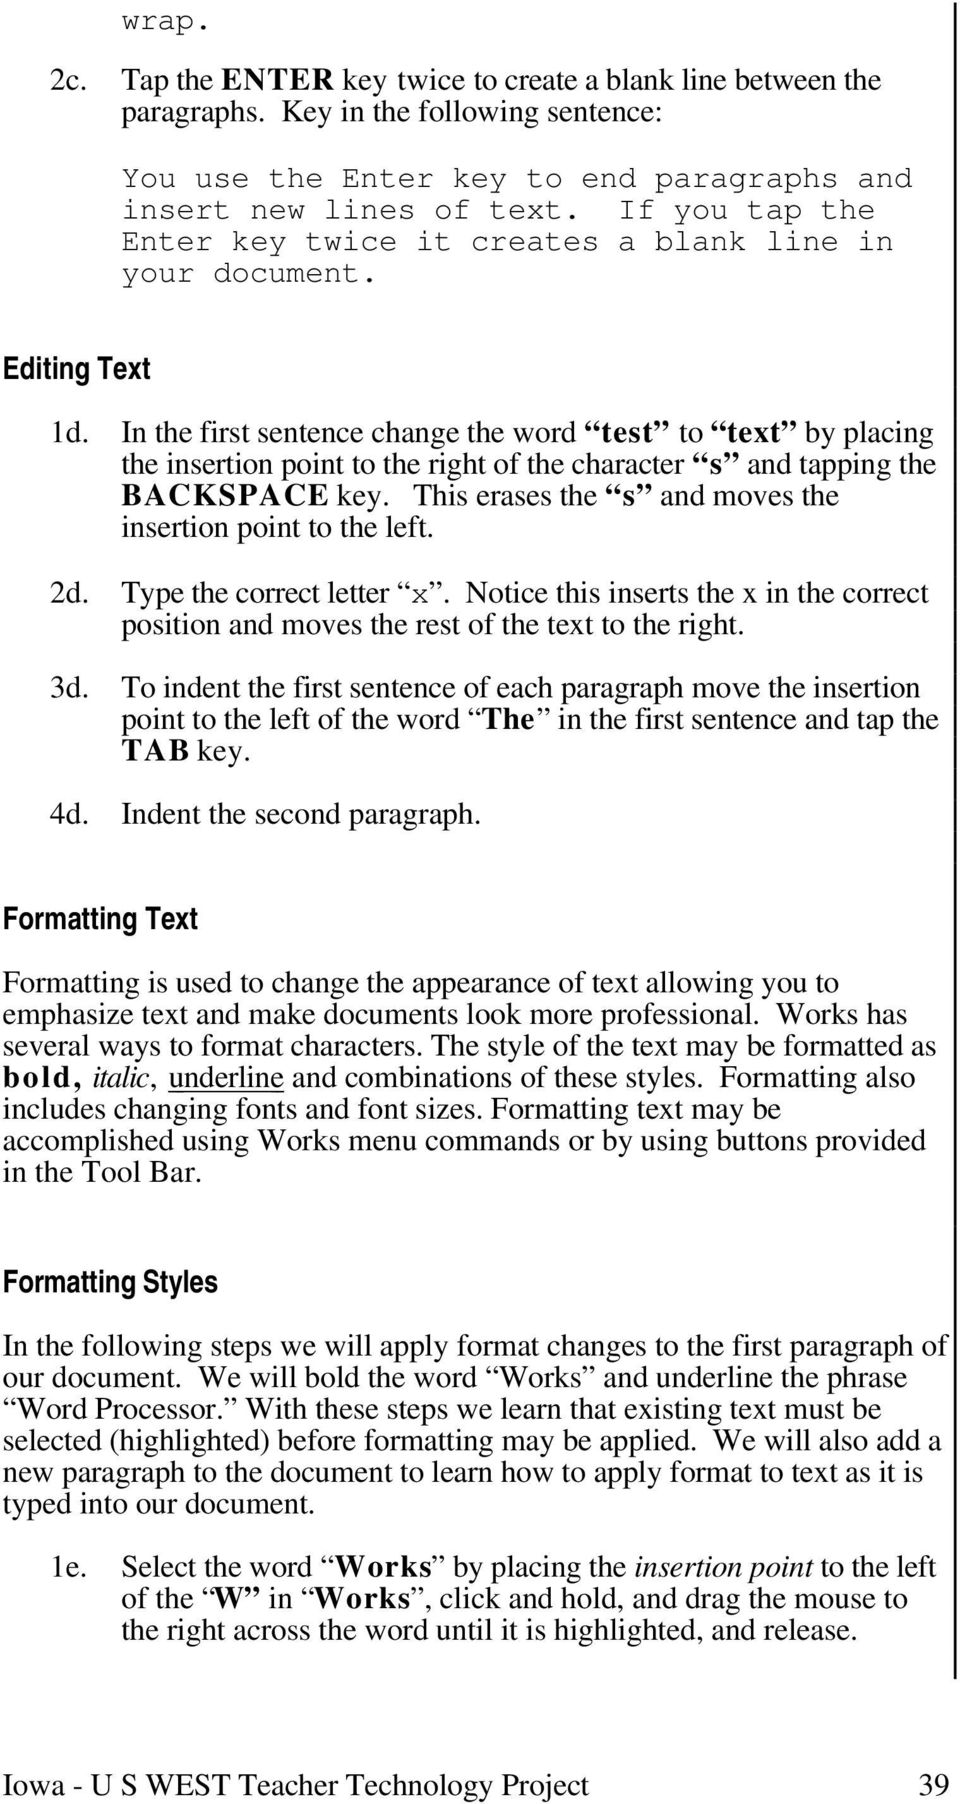 In the first sentence change the word test to text by placing the insertion point to the right of the character s and tapping the BACKSPACE key.